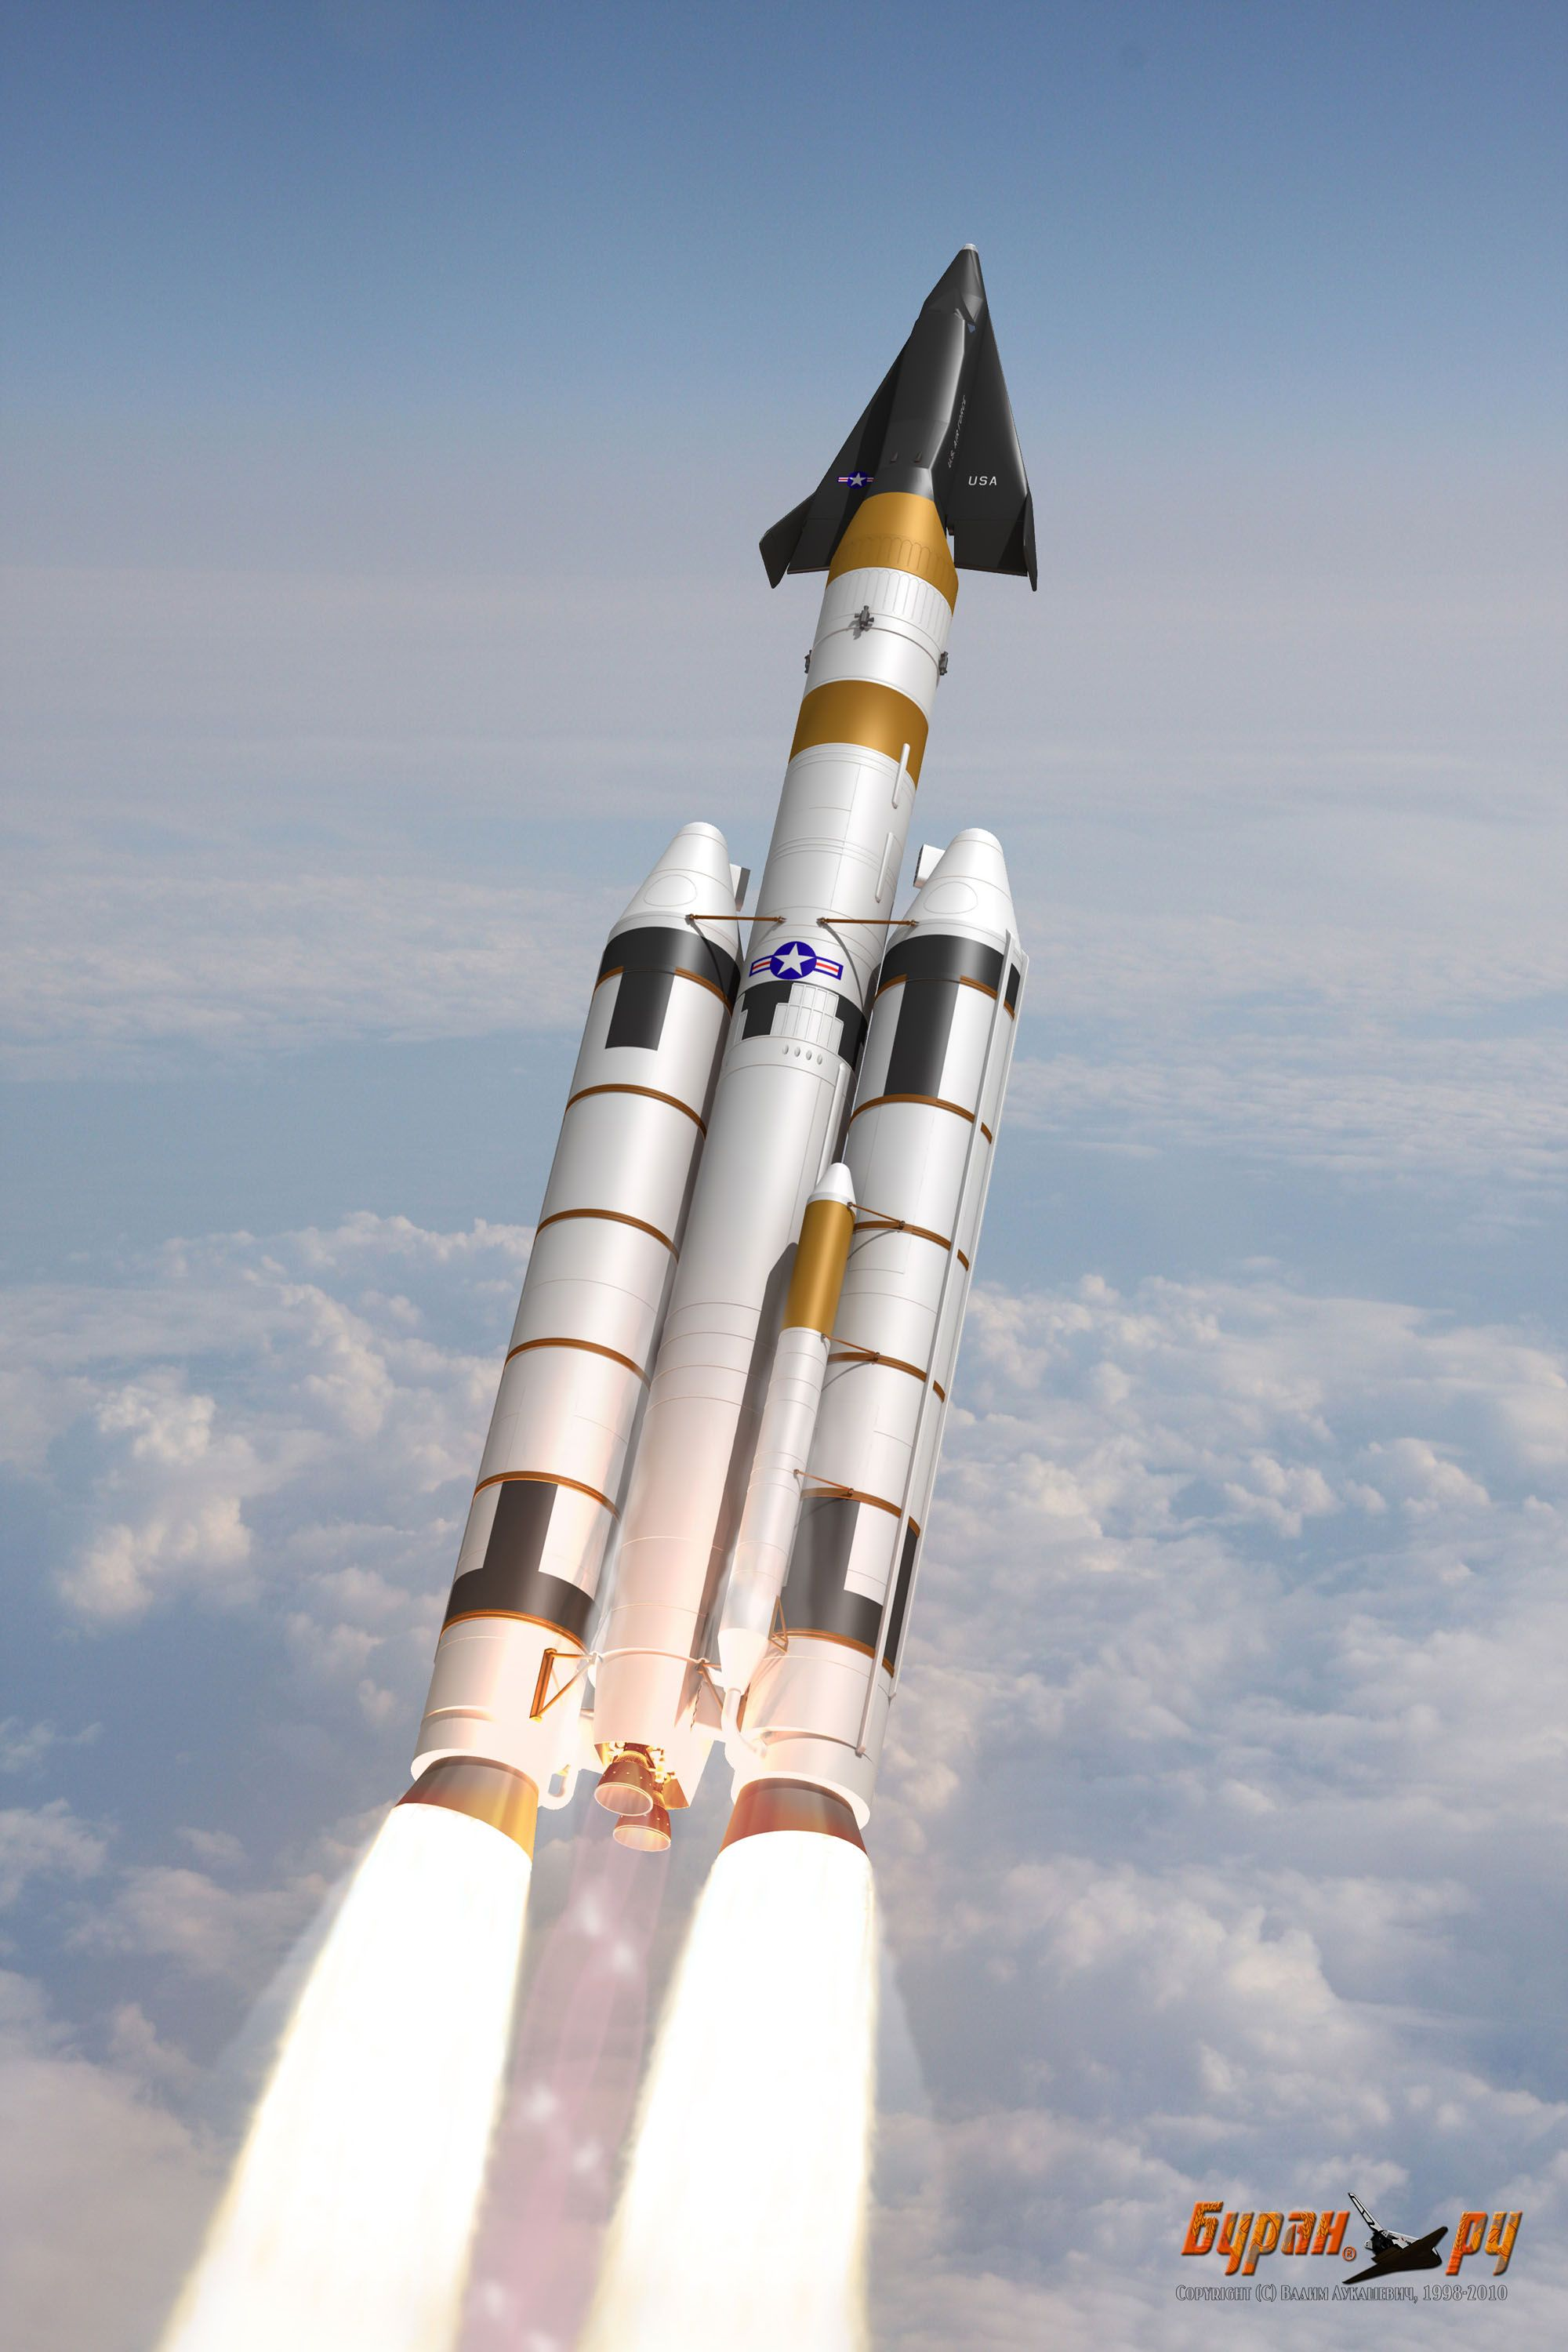 pin by clifford huff on space flight pinterest spacecraft space rh pinterest com